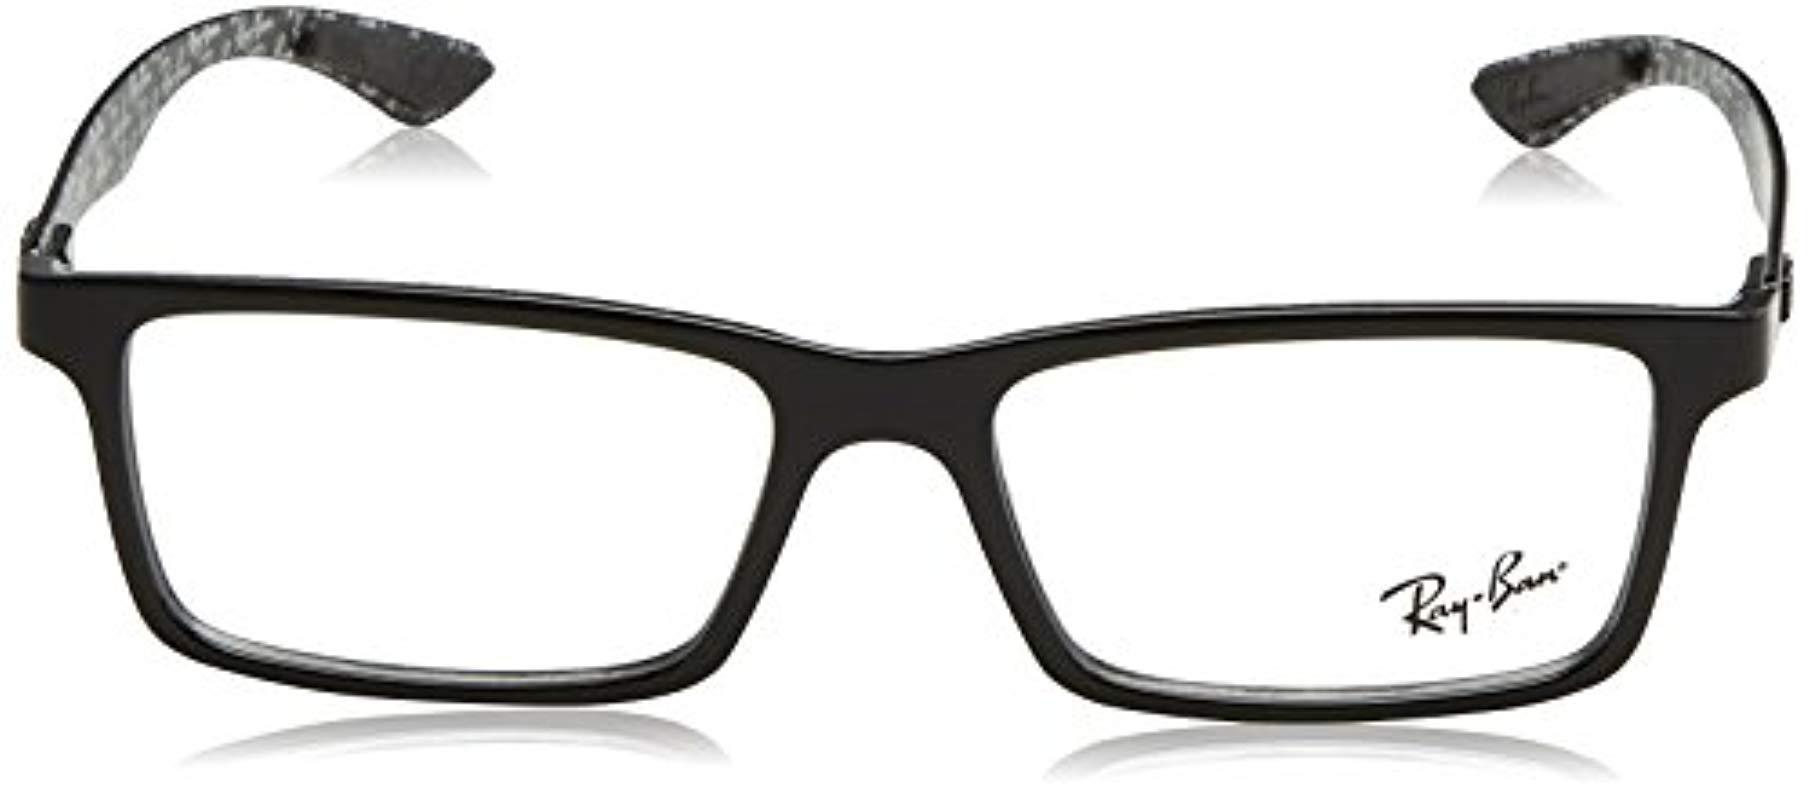 Ray-Ban Rayban 8901 in Black for Men - Save 42% - Lyst 028f25d70fa8